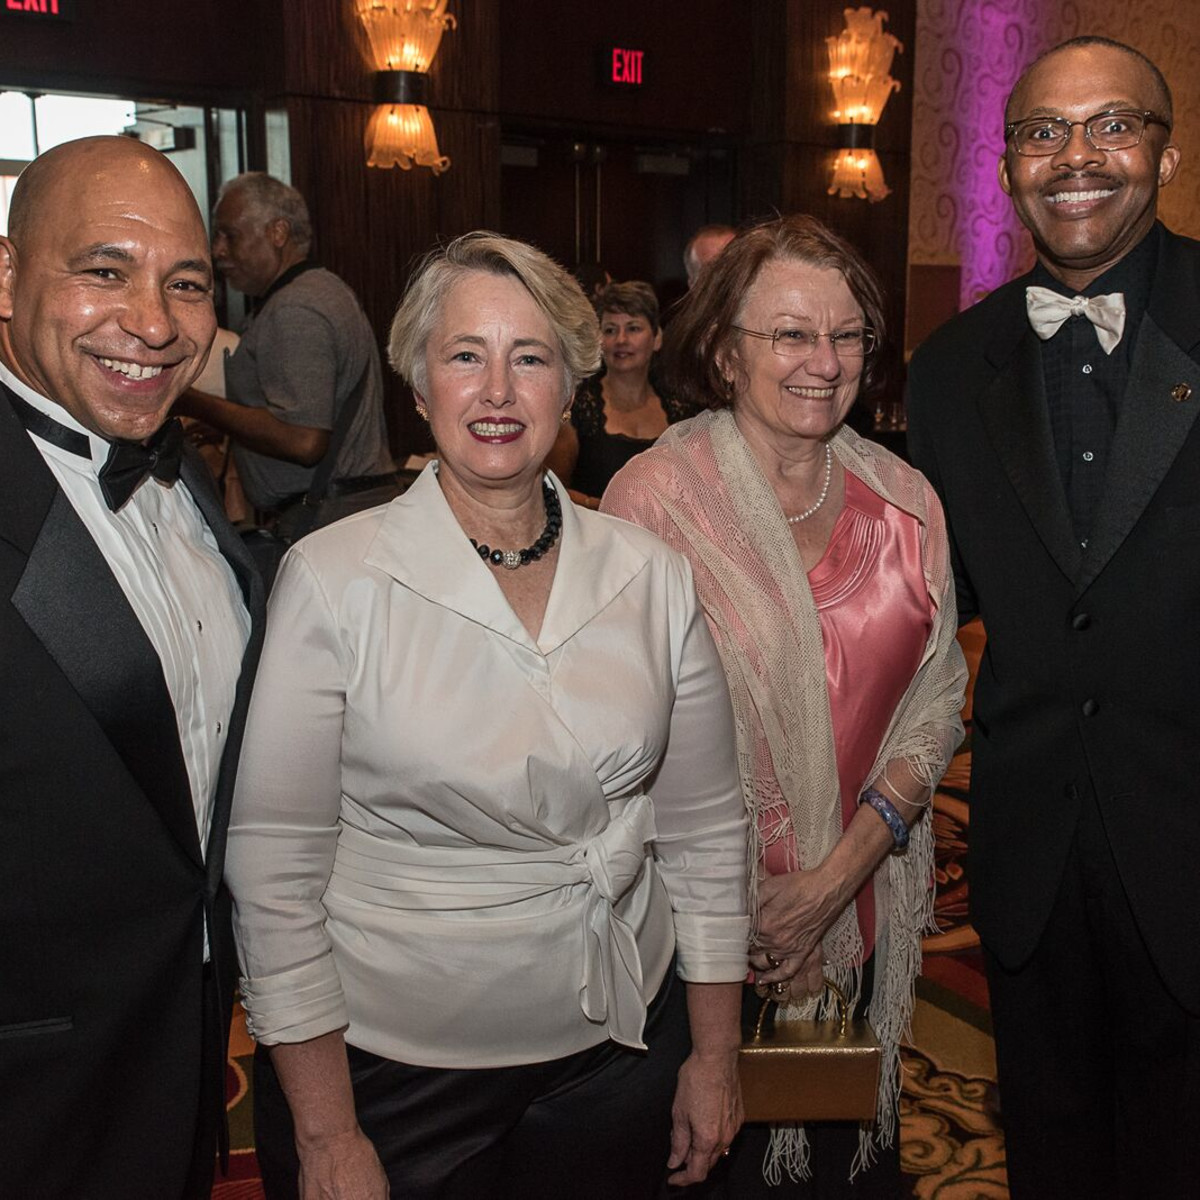 News, Shelby, Ensemble Theatre gala, Aug. 2015, Scott Minnix, Annise Parker, Kathy Hubbard, Michael J. Helm